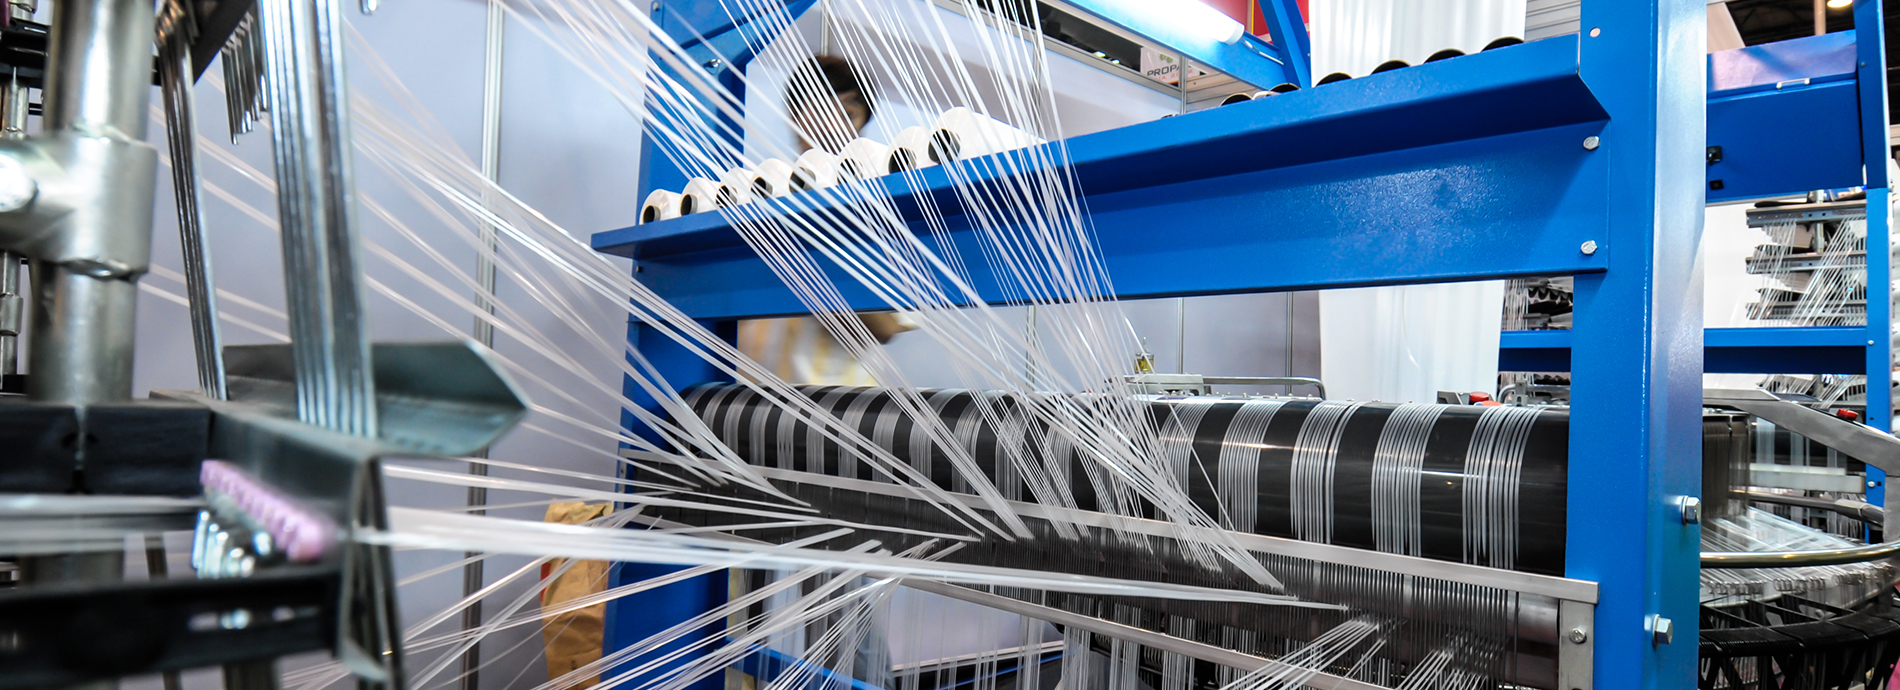 Textile processing yielding yarns